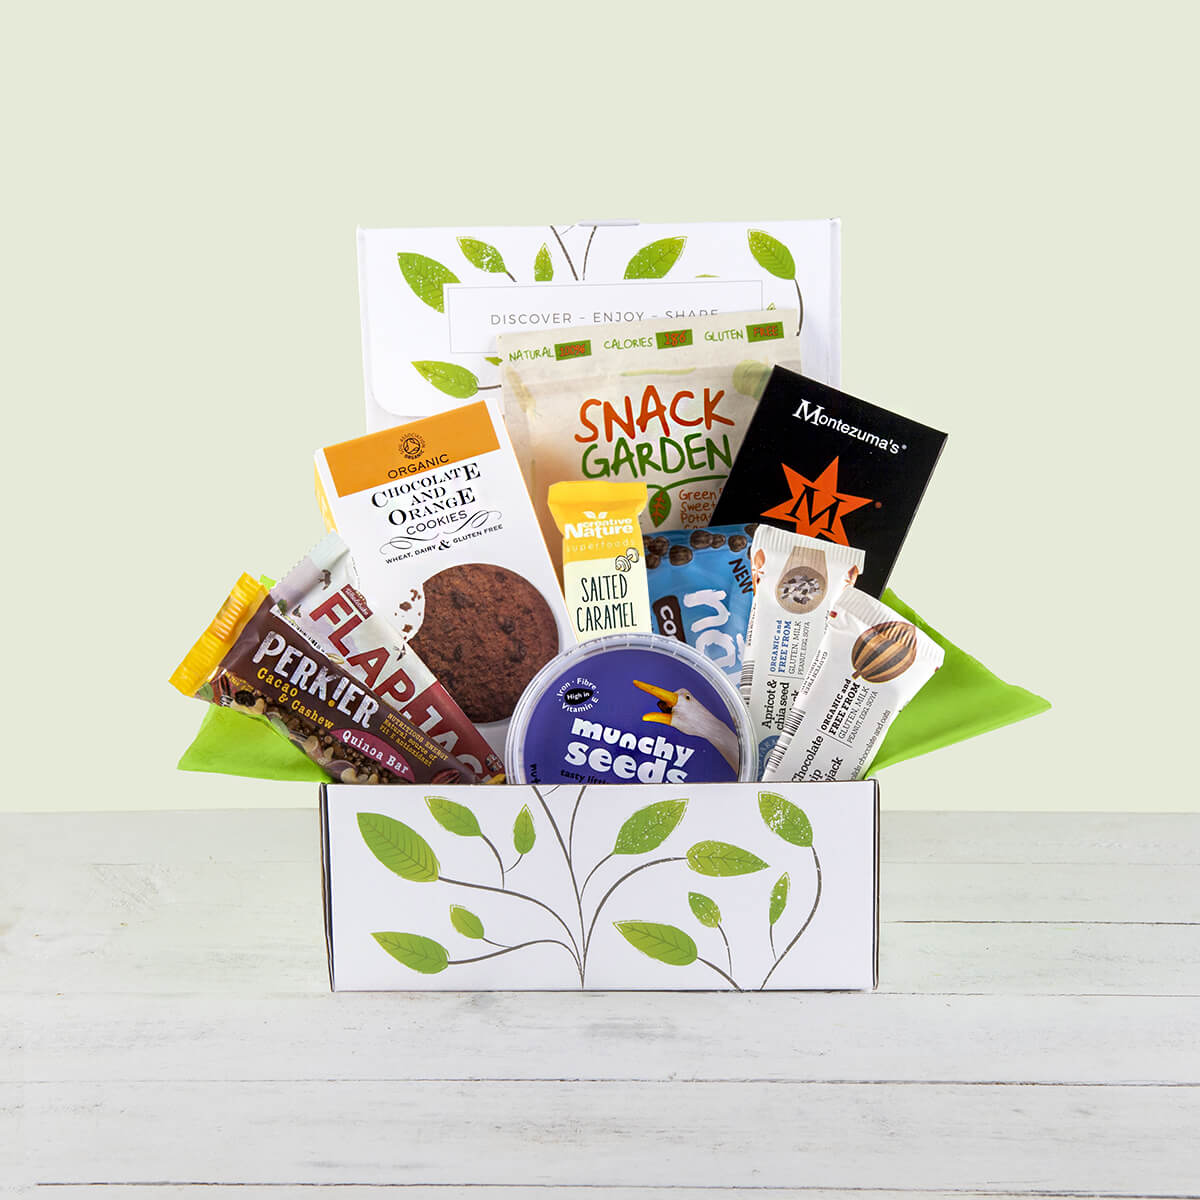 Gluten free snack hamper gift box contentproductsgluten free snack hamper gift box1 negle Image collections